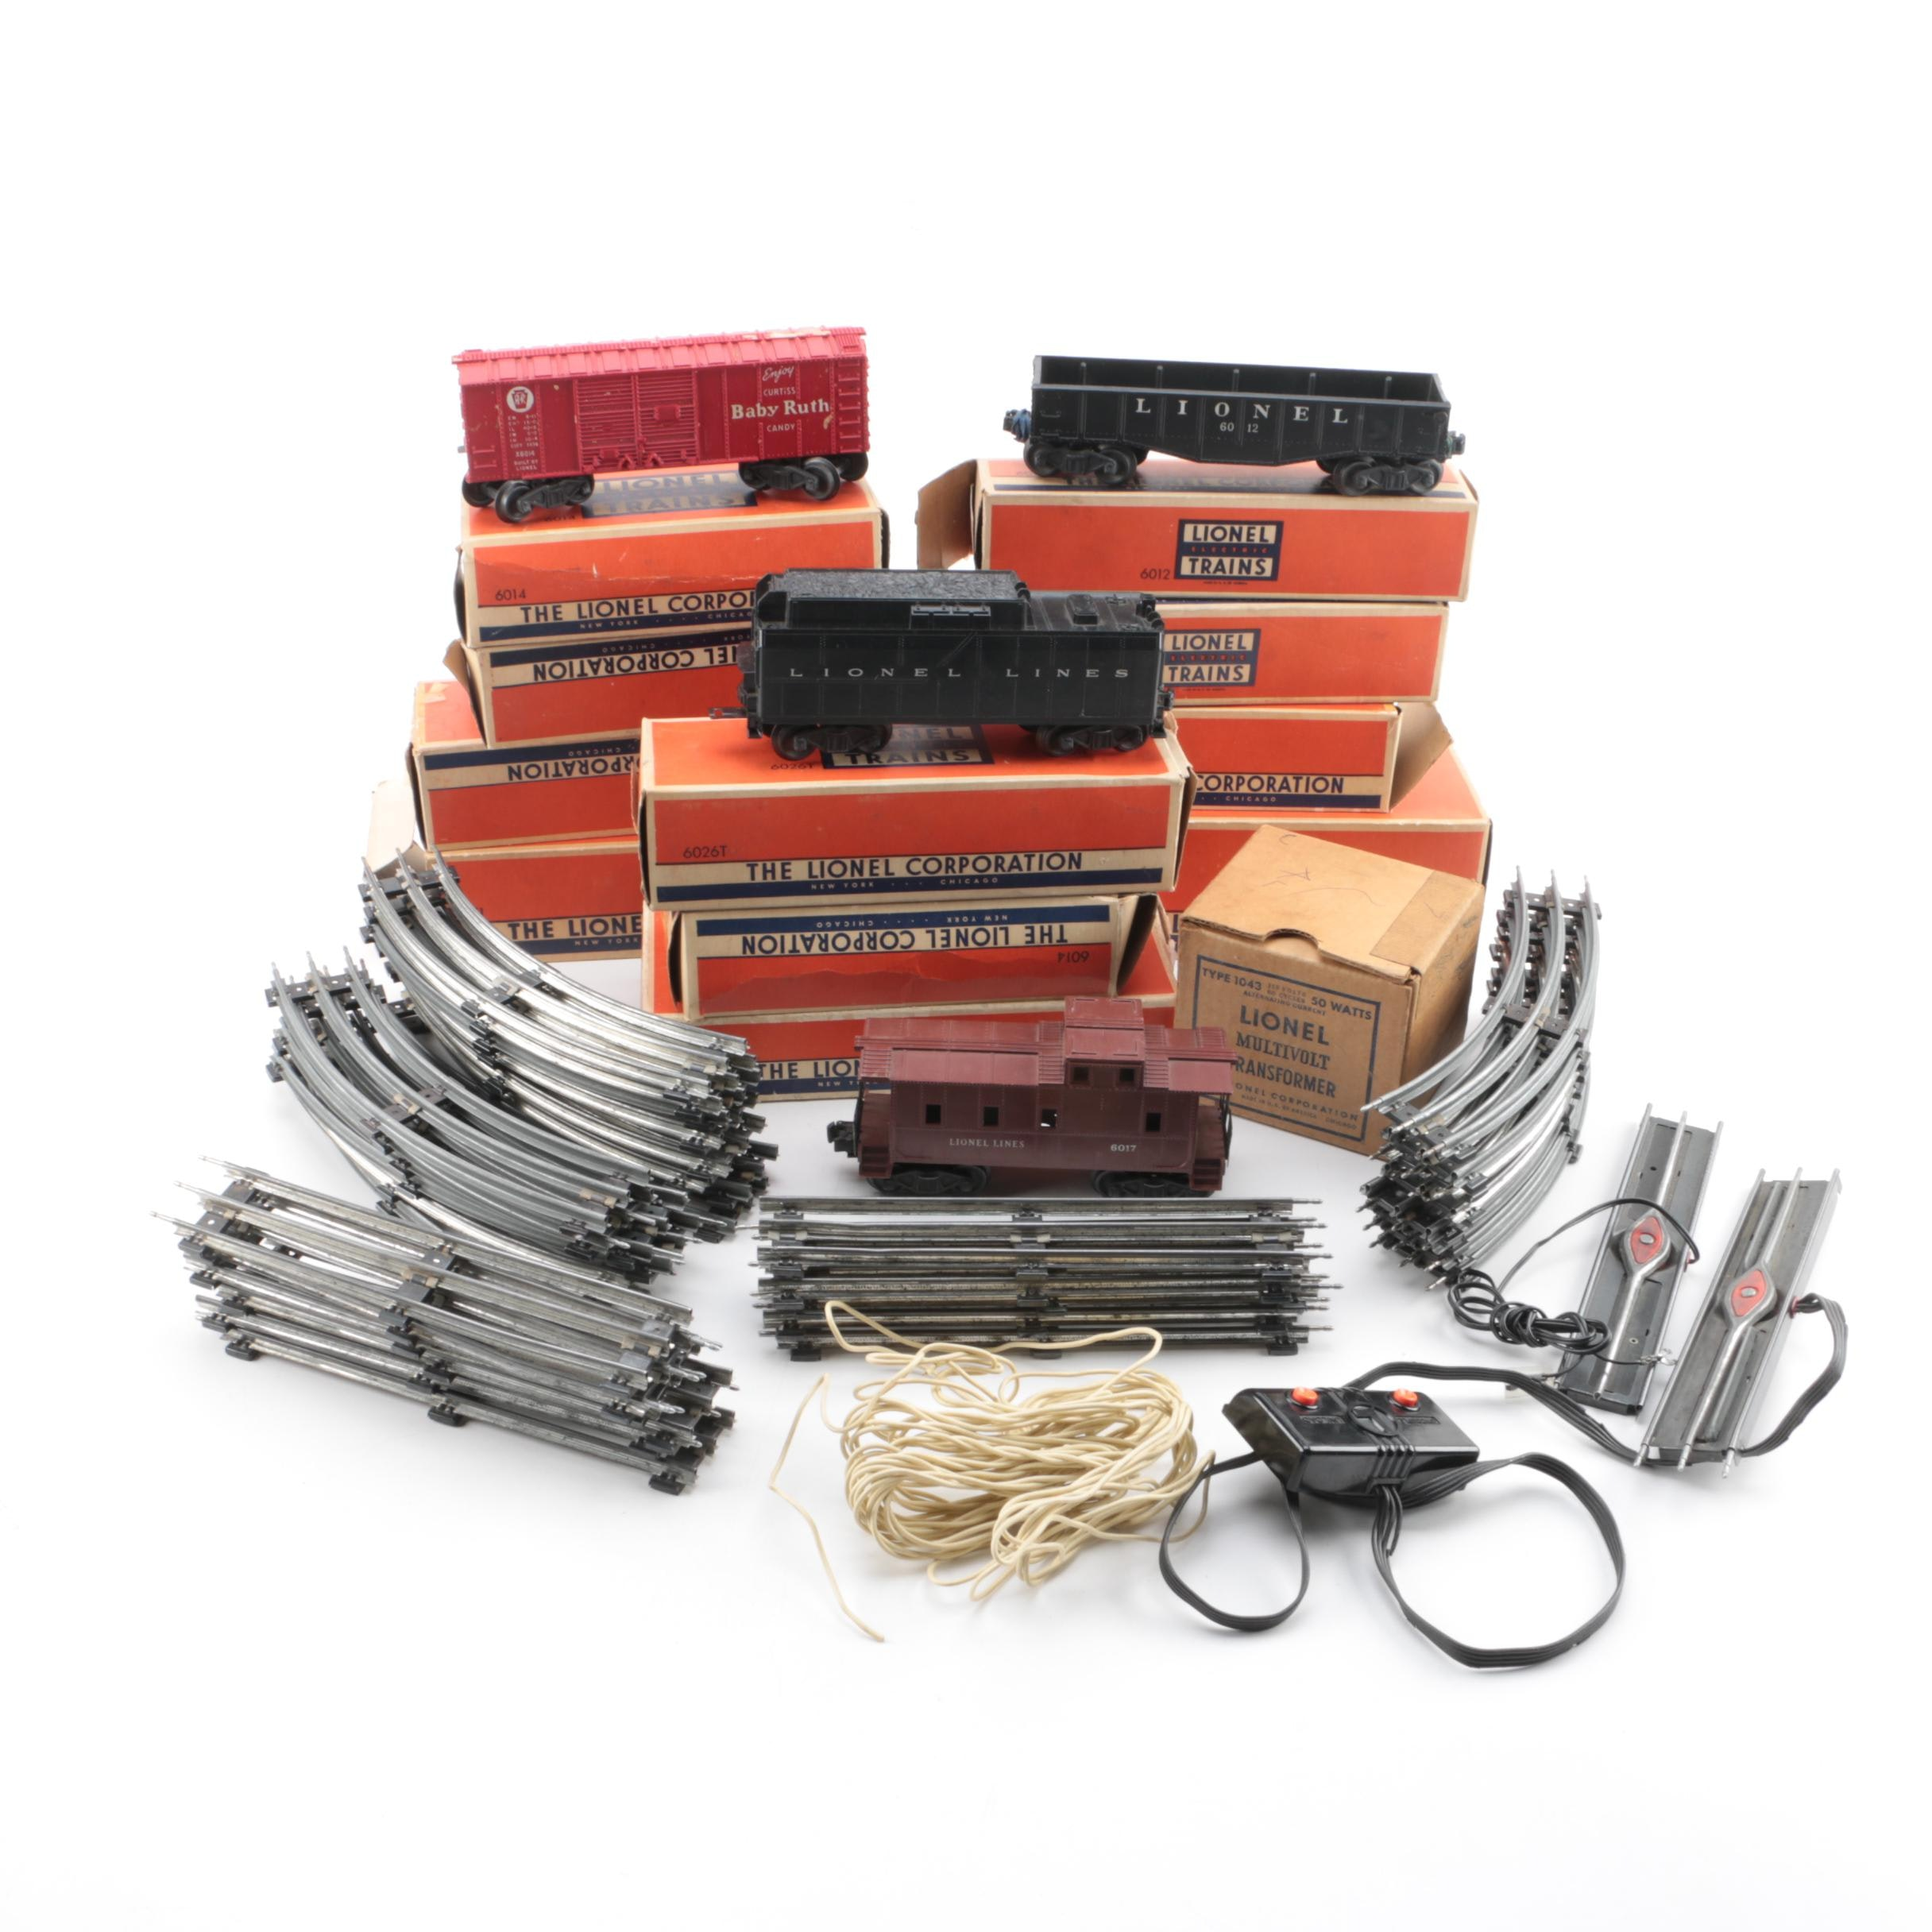 Lionel Trains and Accessories